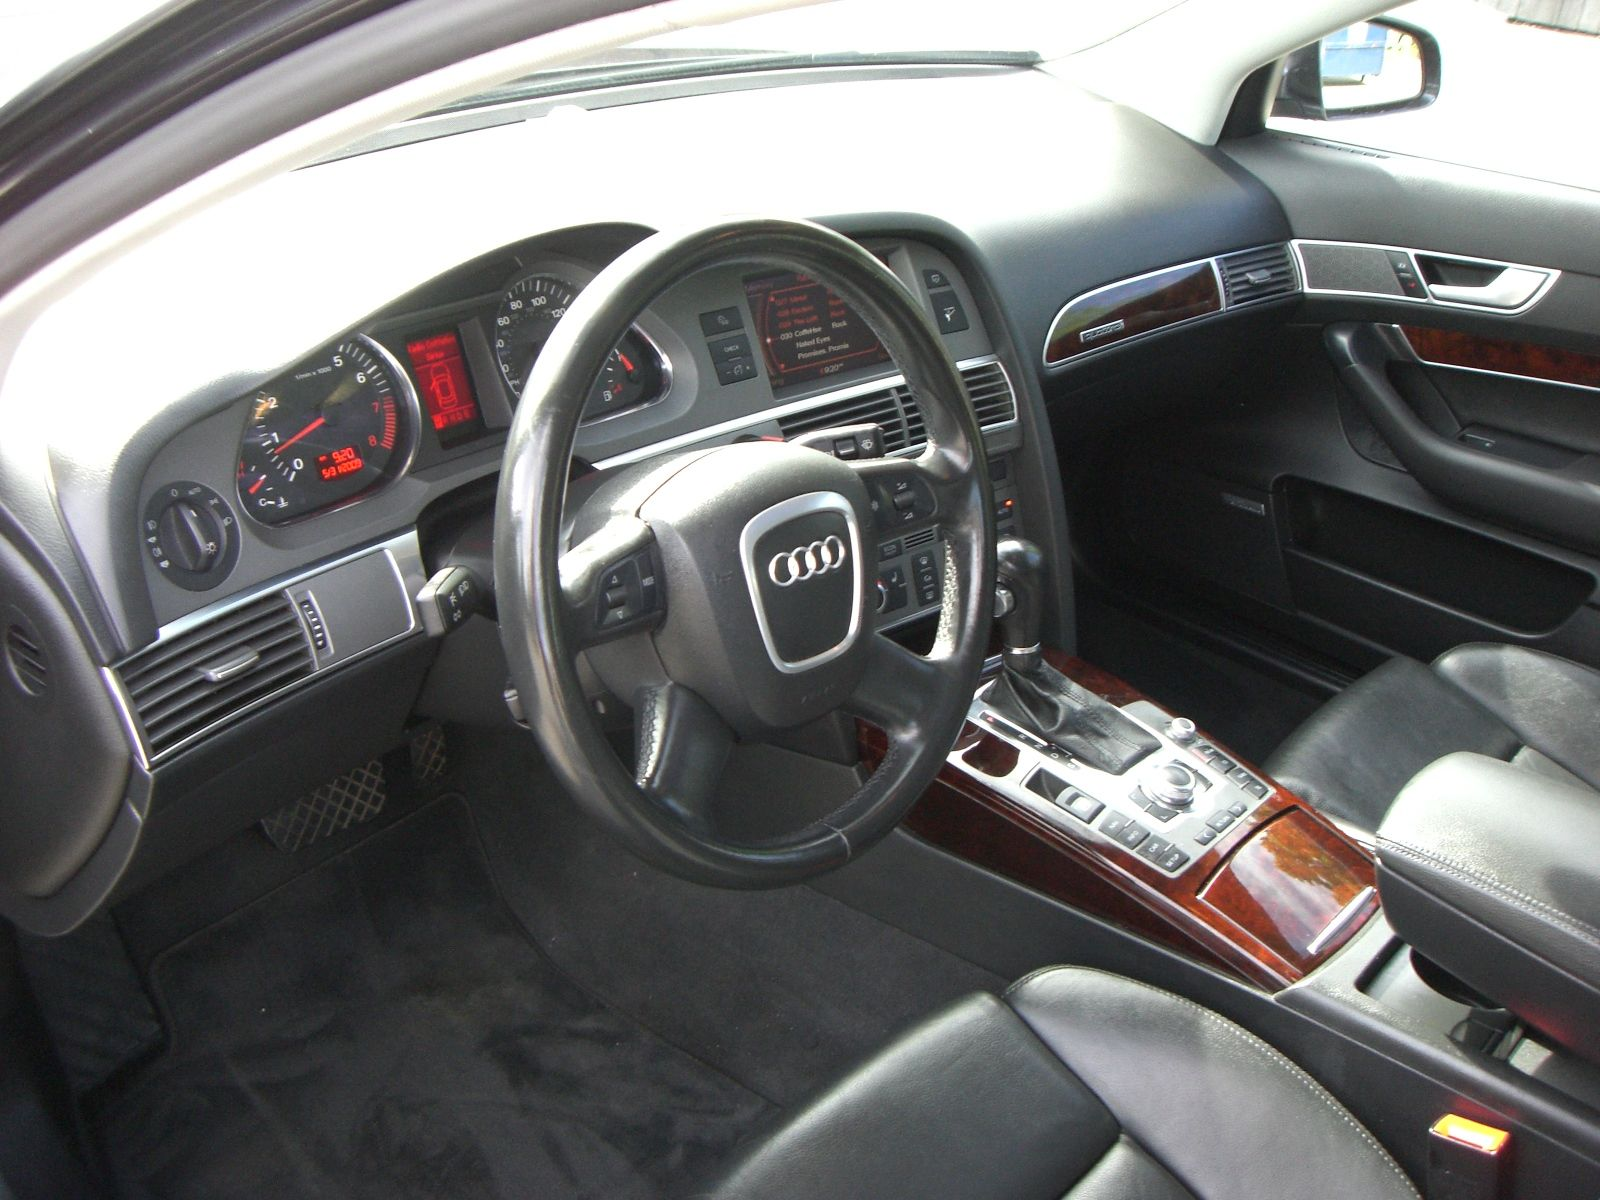 06 audi a6 interior tremendous condition in this sweet v8 cars and car stuff pinterest. Black Bedroom Furniture Sets. Home Design Ideas